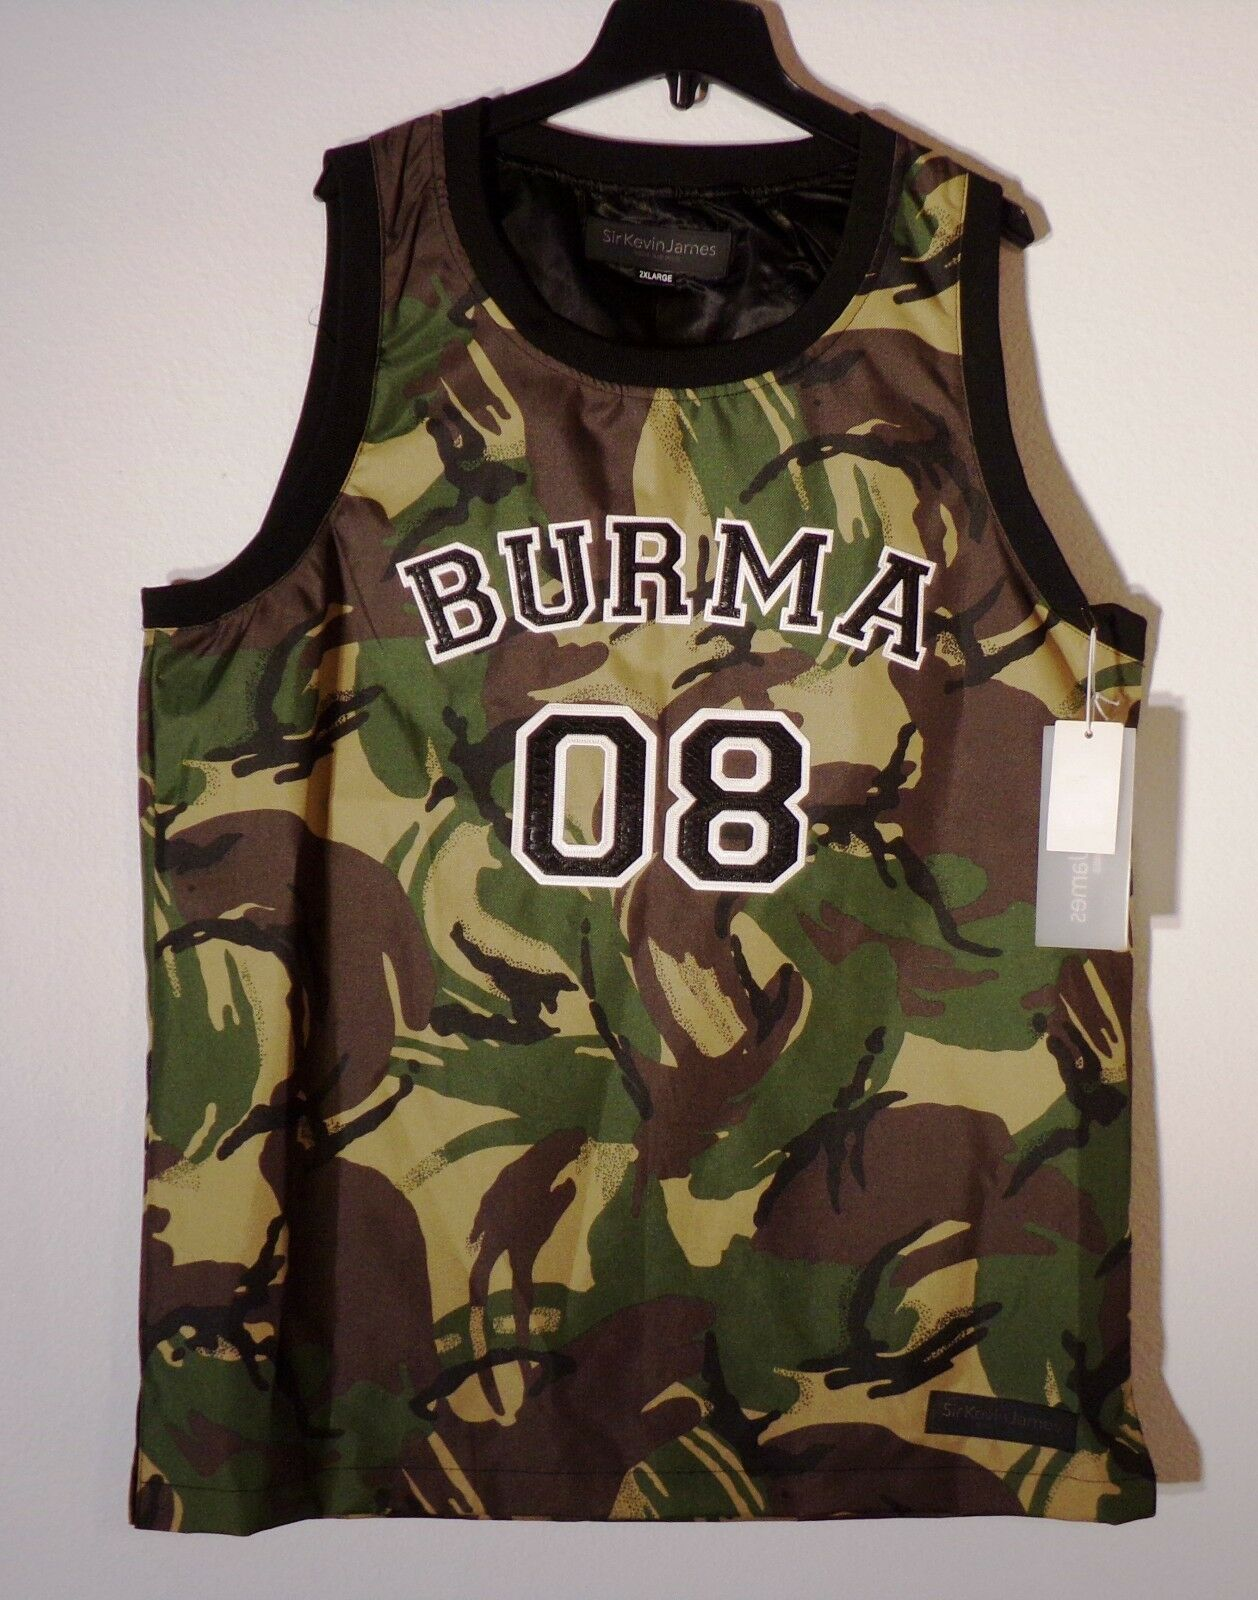 NWT Herren SIR KEVIN JAMES 2XL CAMO BURMA 08 RAMBO VEST  100%POLY 137  1277